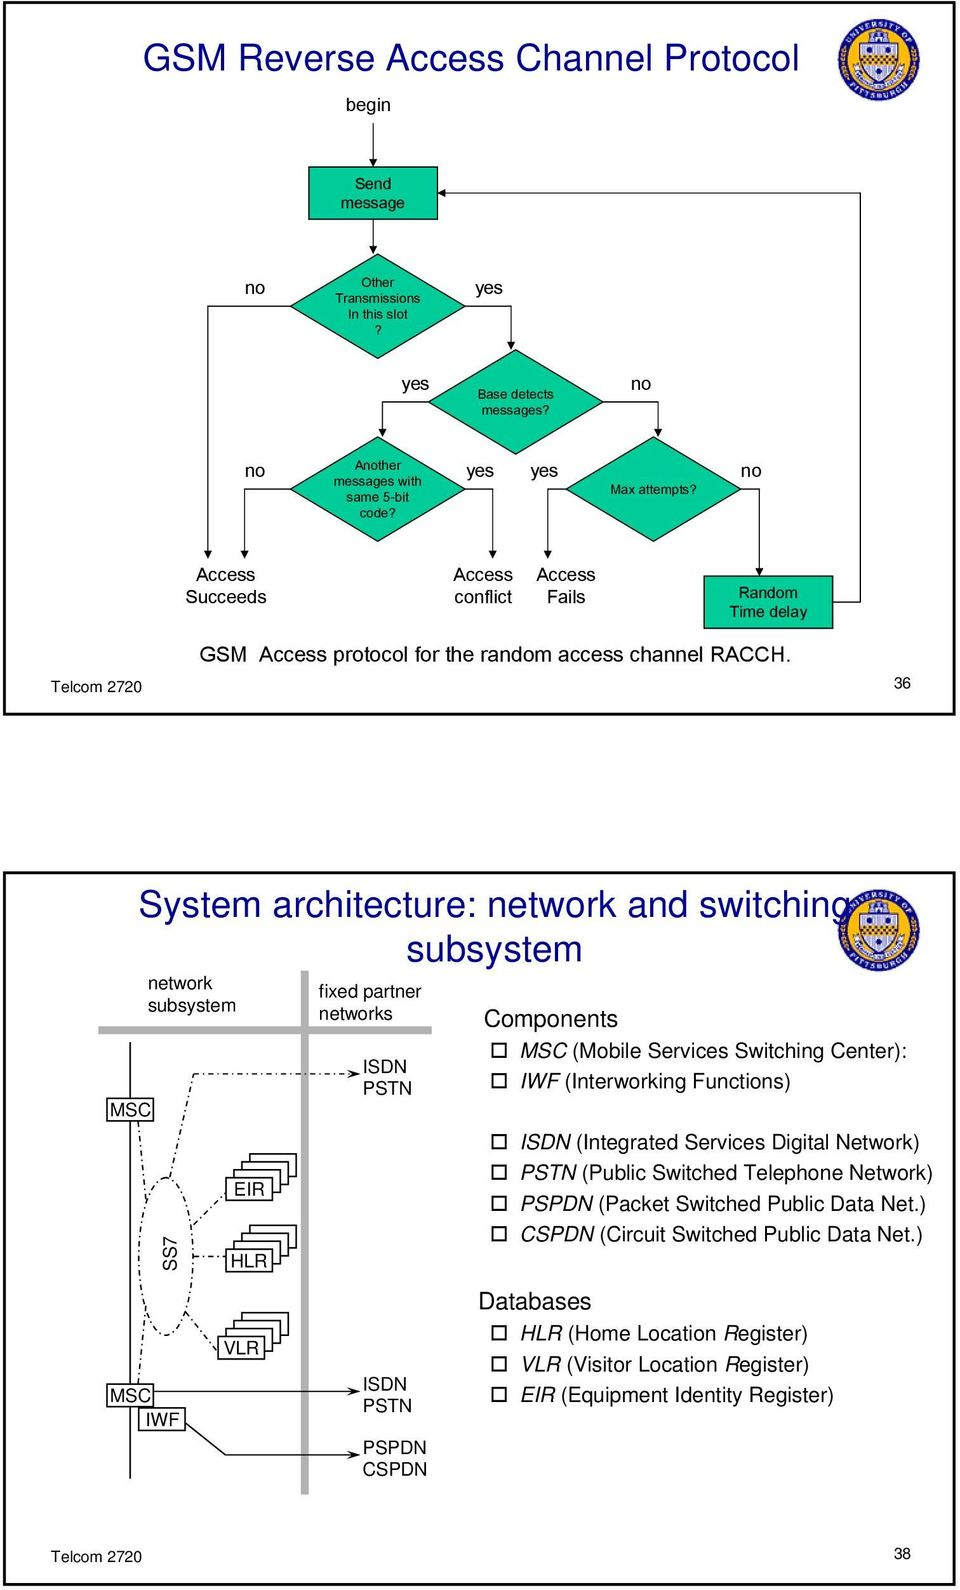 Telcom 2720 36 MSC System architecture: network and switching subsystem network subsystem SS7 MSC IWF EIR HLR VLR fixed partner networks ISDN PSTN ISDN PSTN PSPDN CSPDN Components MSC (Mobile